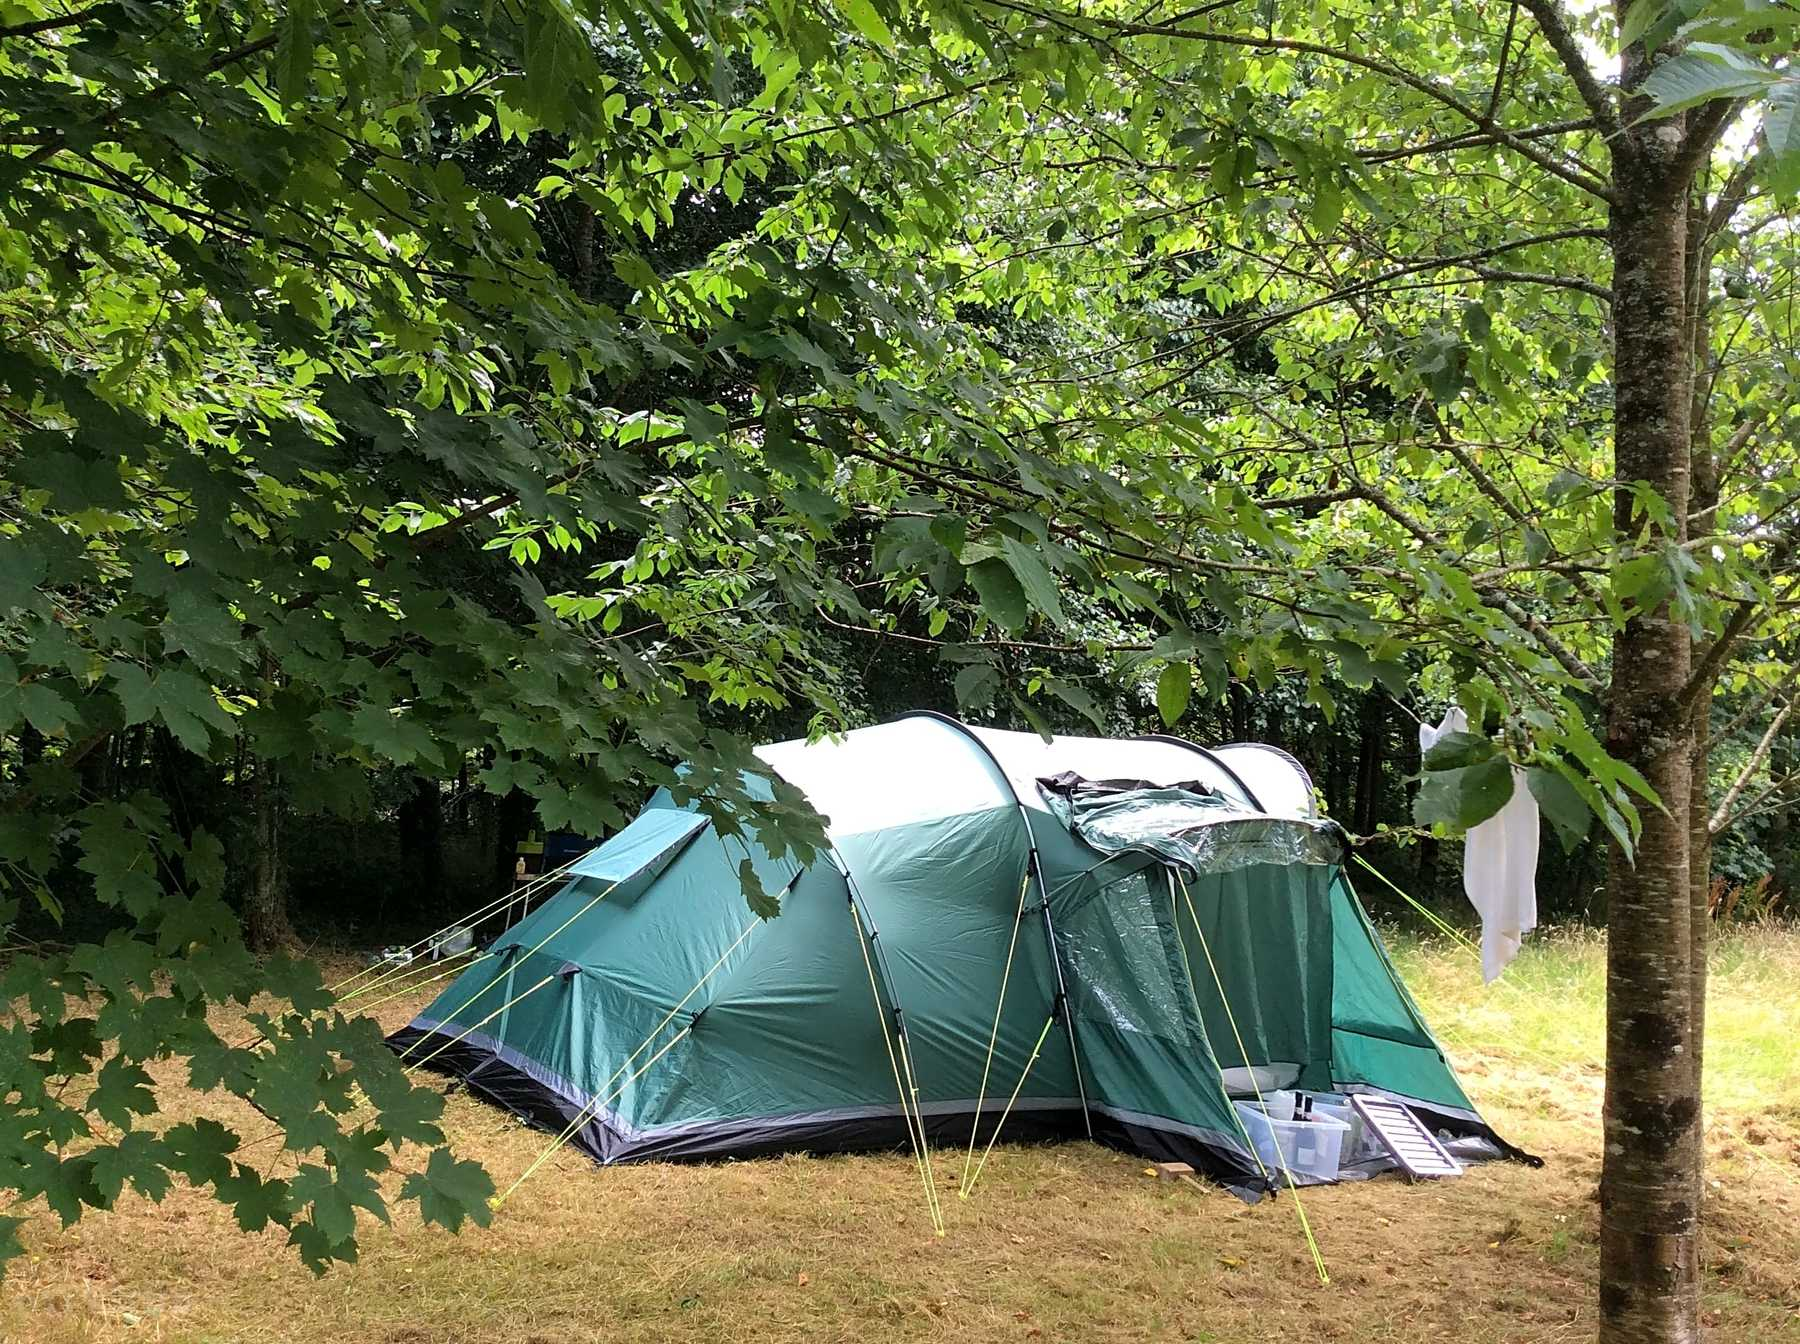 Best Campsites in Co. Meath 2020 from 24.03 - Book 1